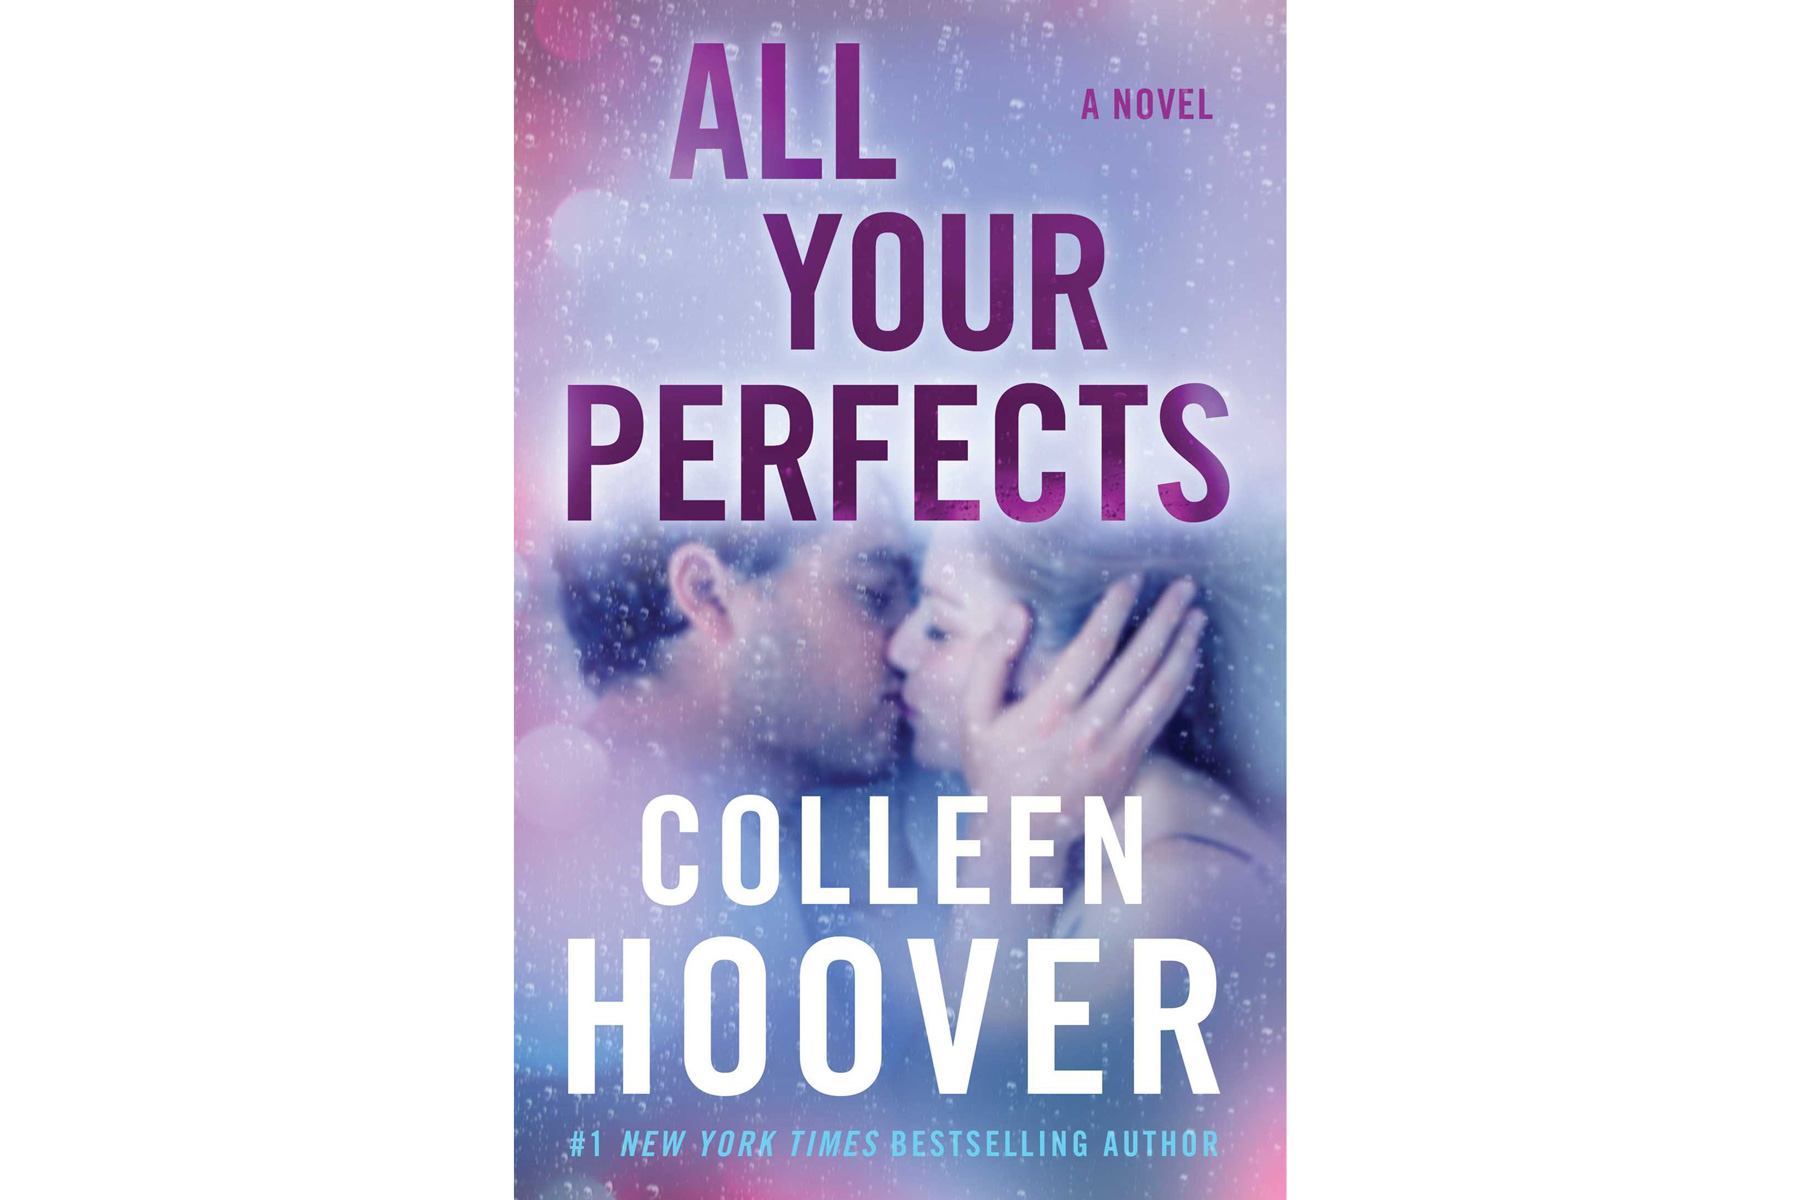 All Your Perfects, by Colleen Hoover